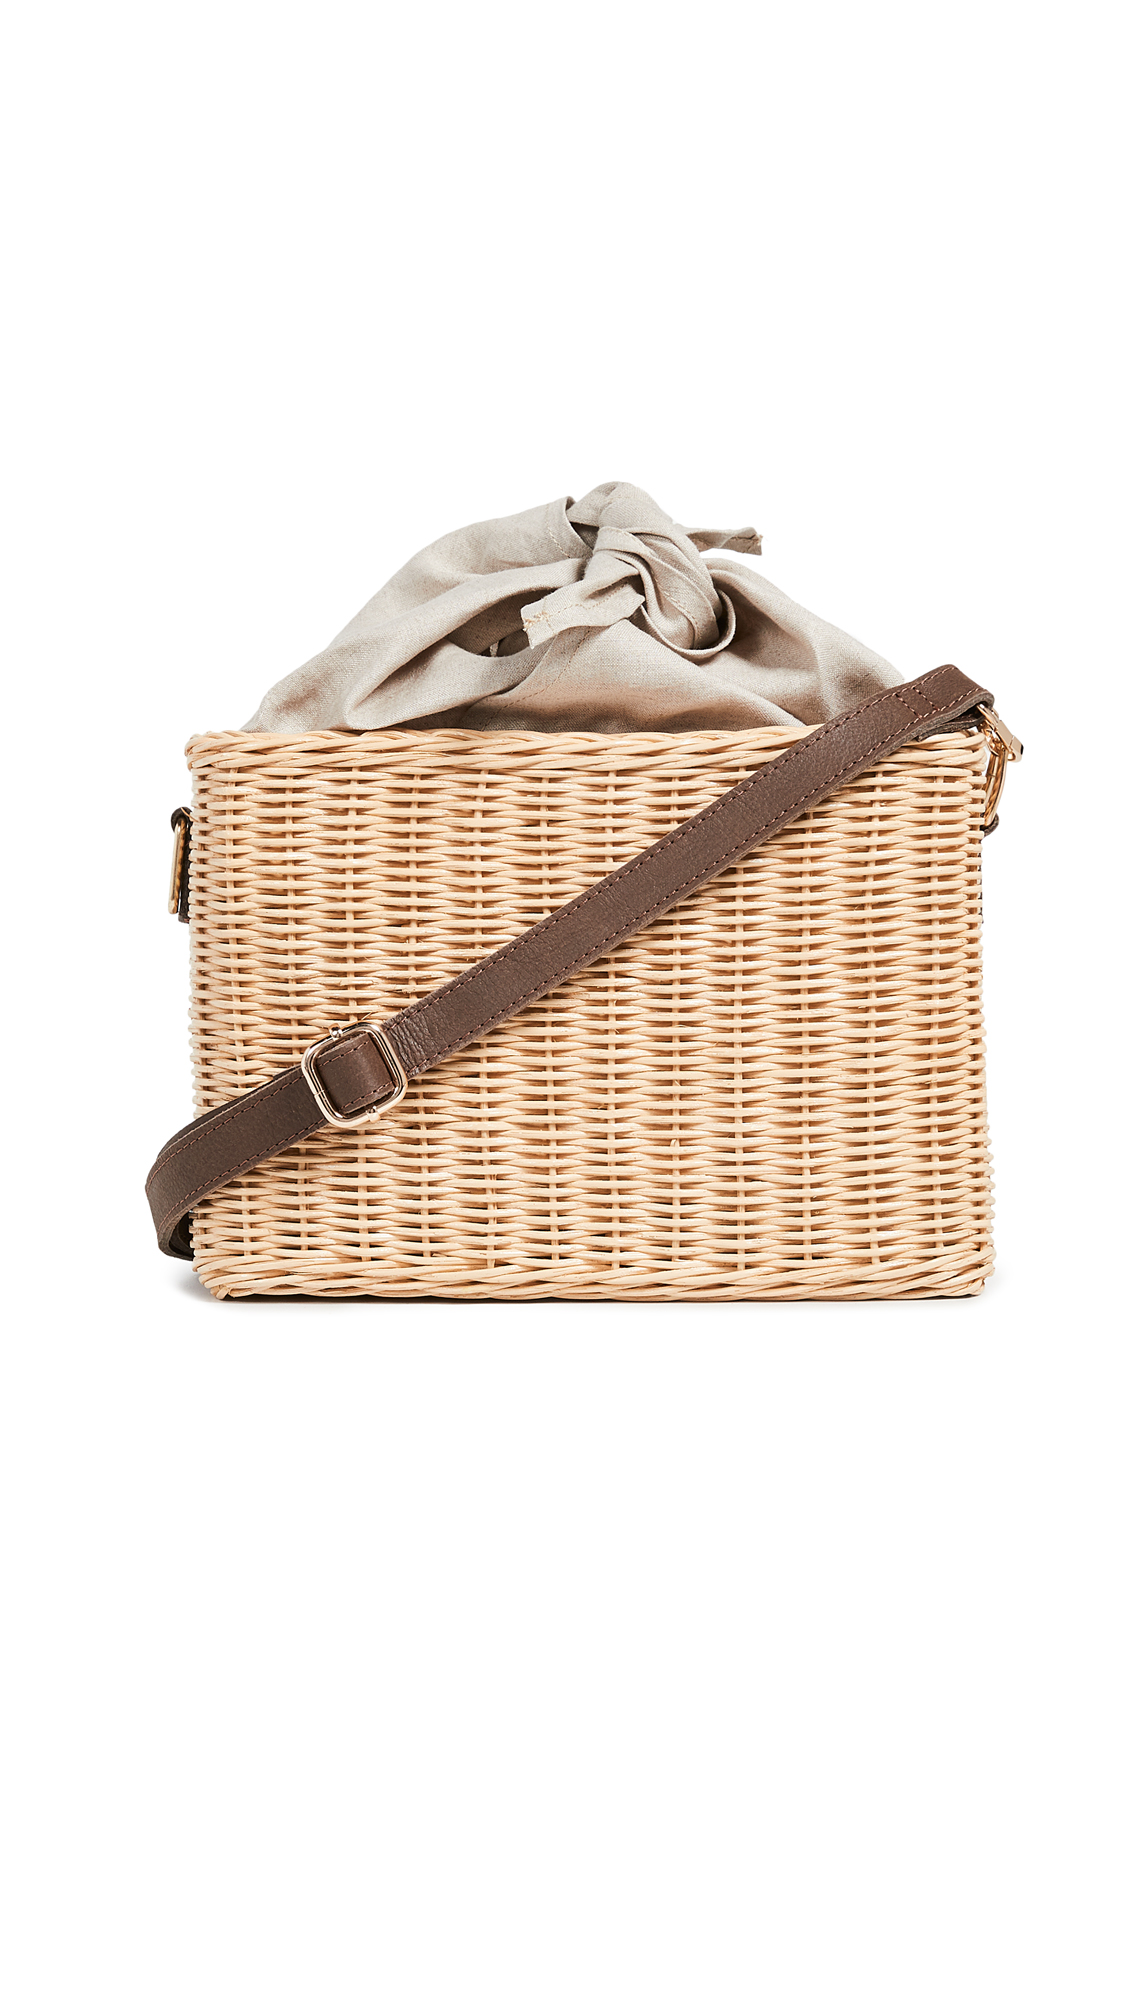 Kayu Reece Straw Wicker Bag In Natural